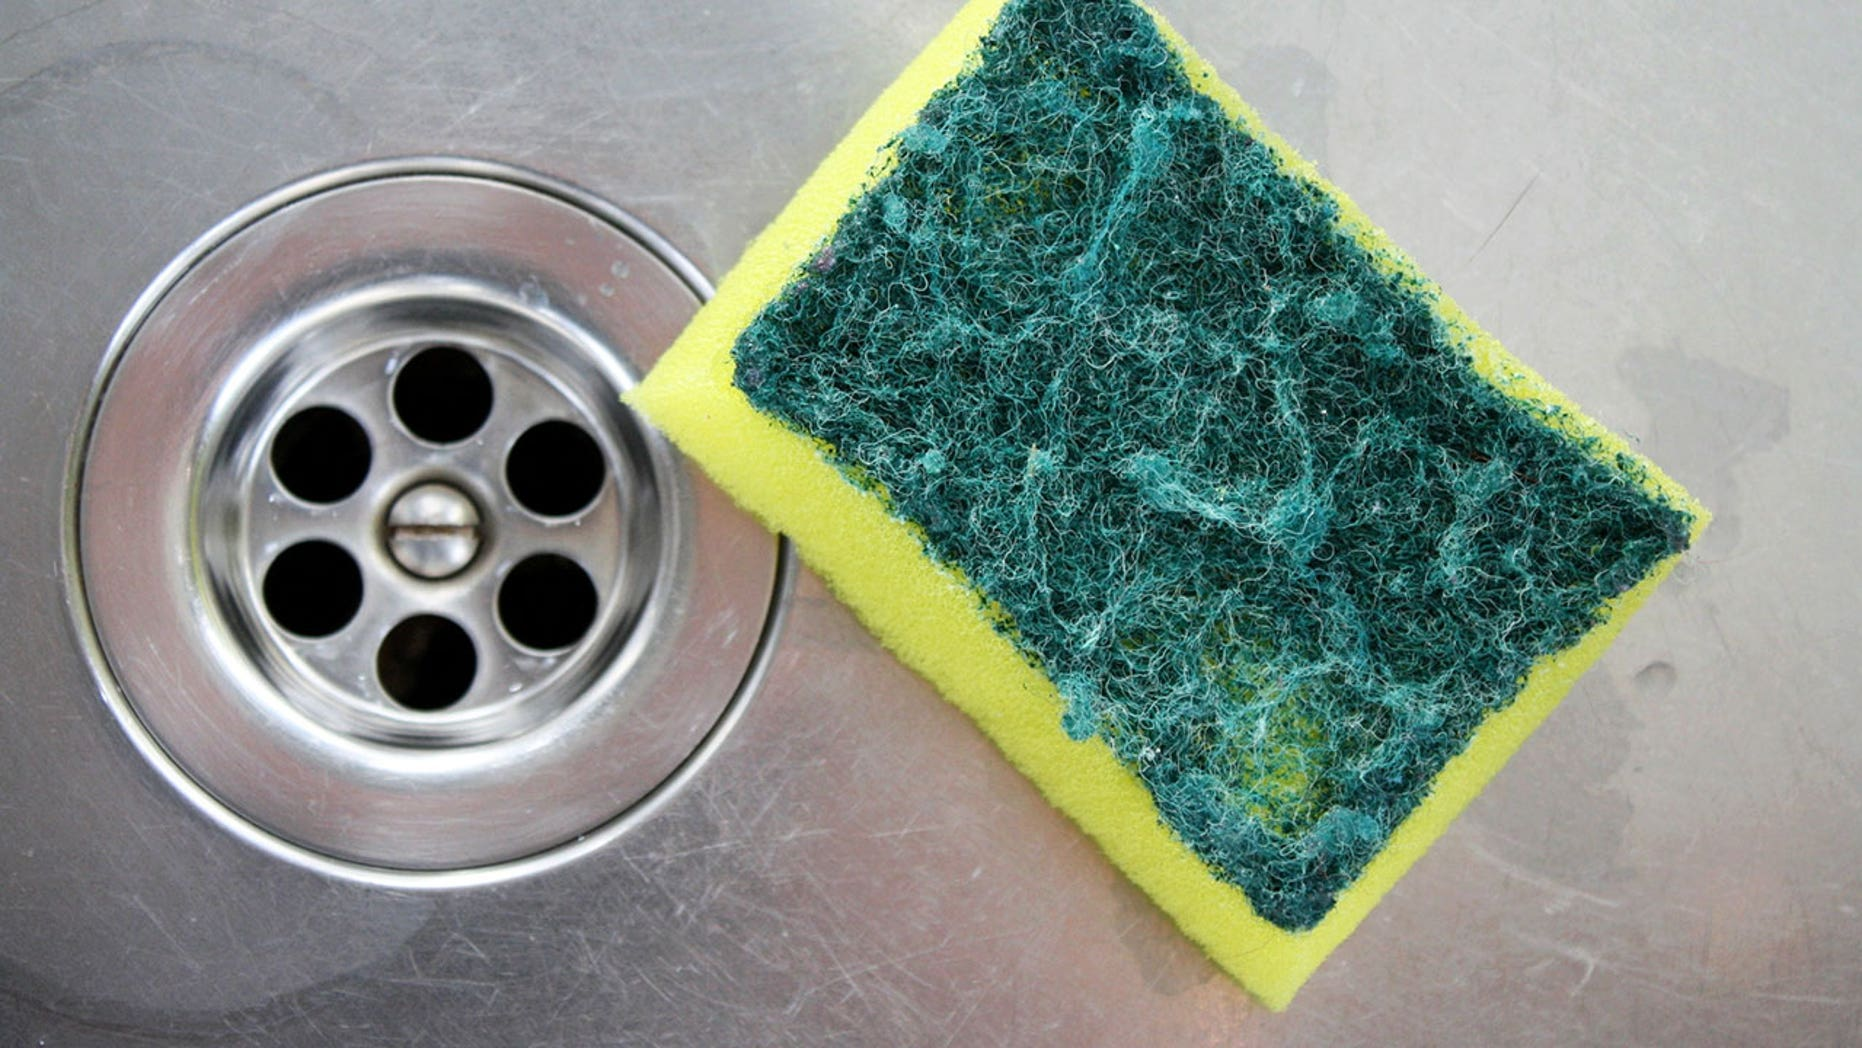 The tried-and-true methods for de-funkifying a nasty sponge.